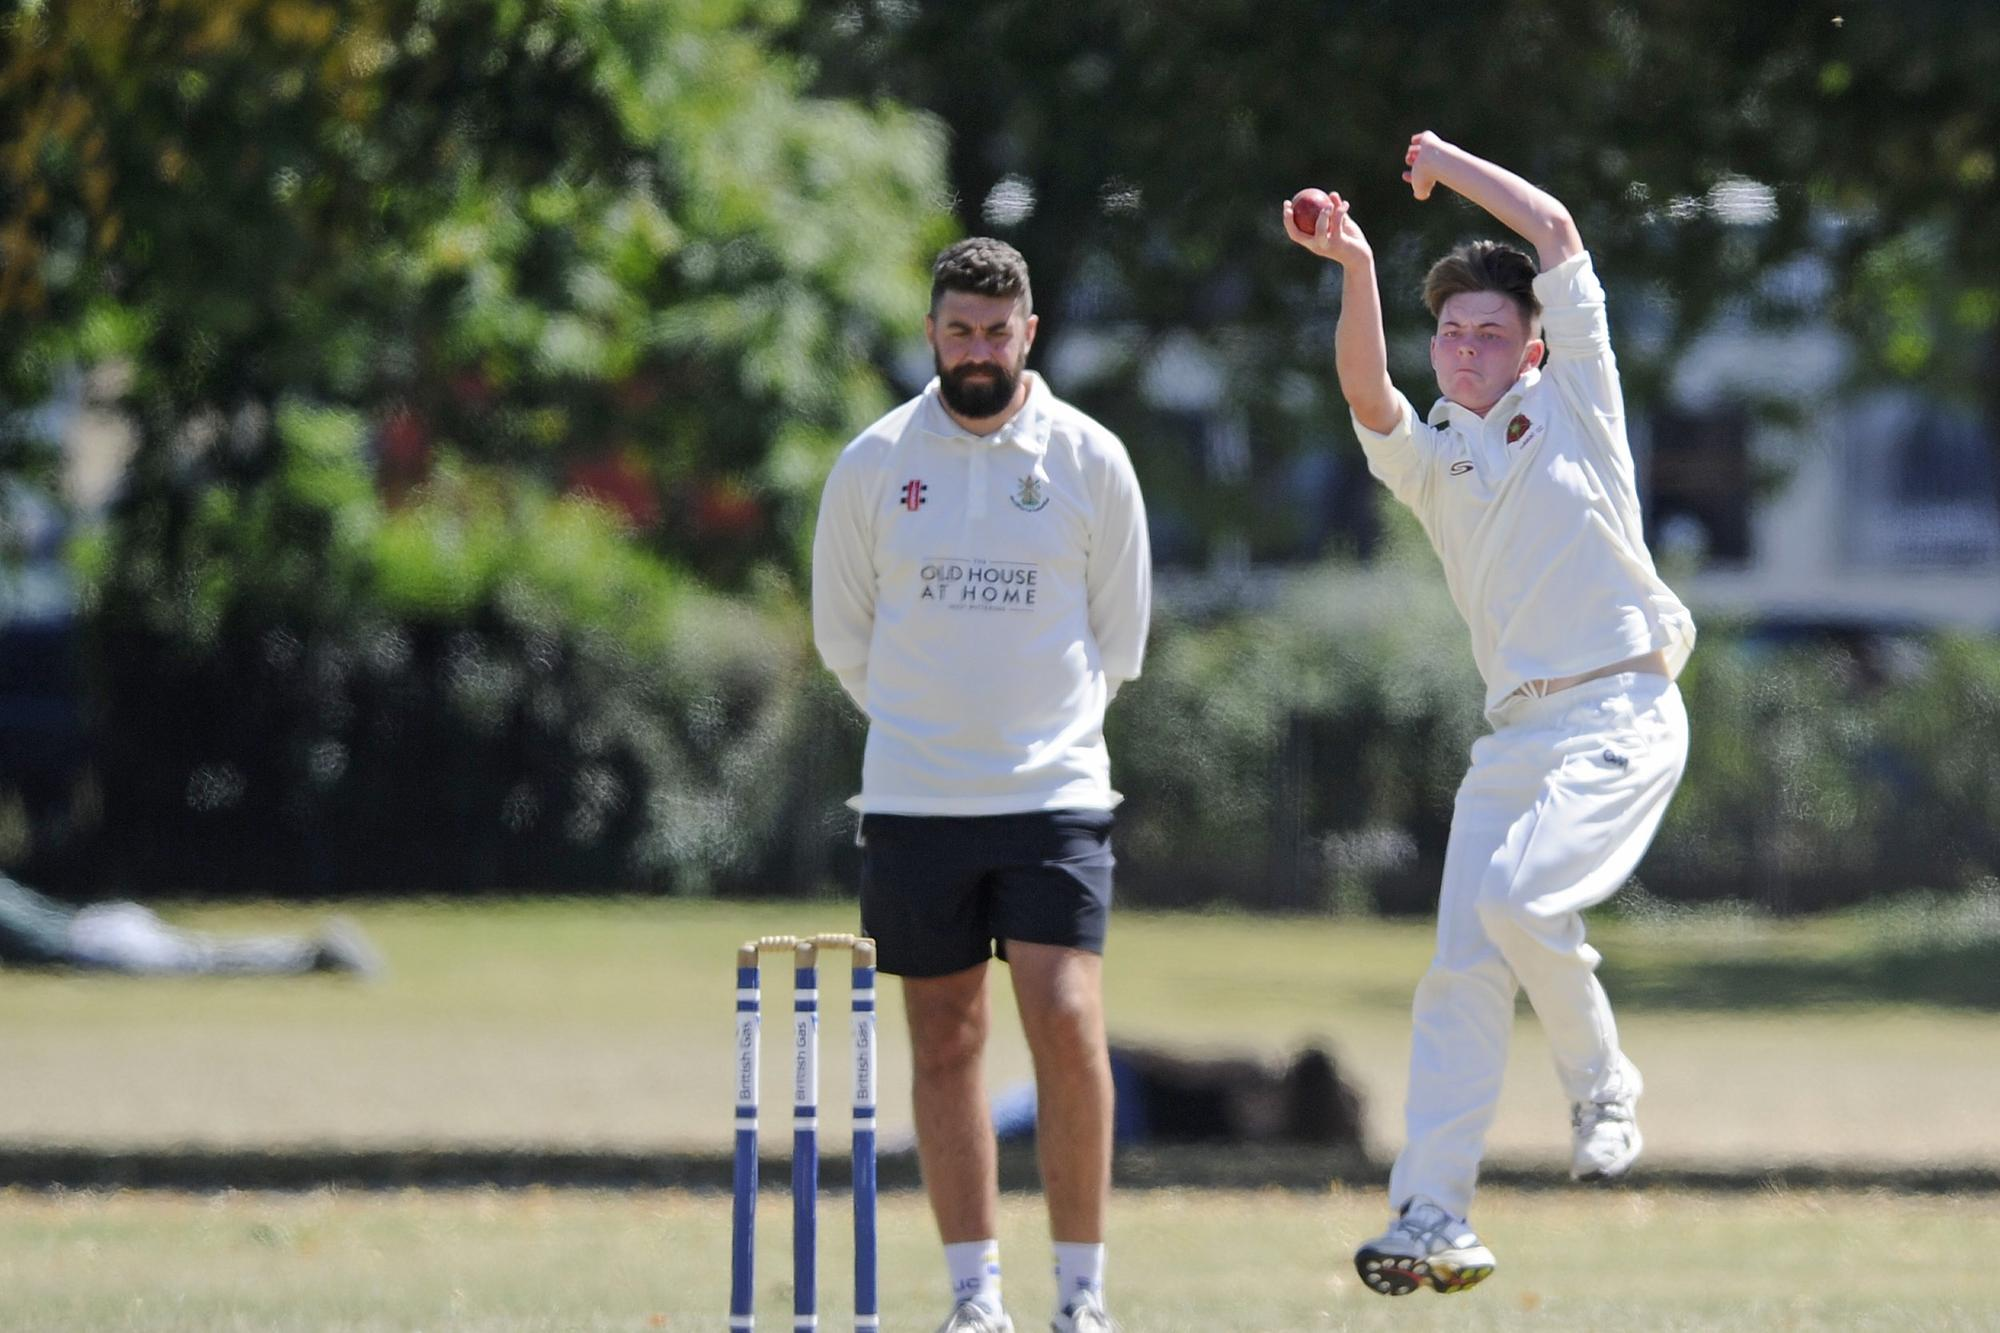 Portsmouth & Southsea CC appear in good shape as competitive cricket restarts after lockdown